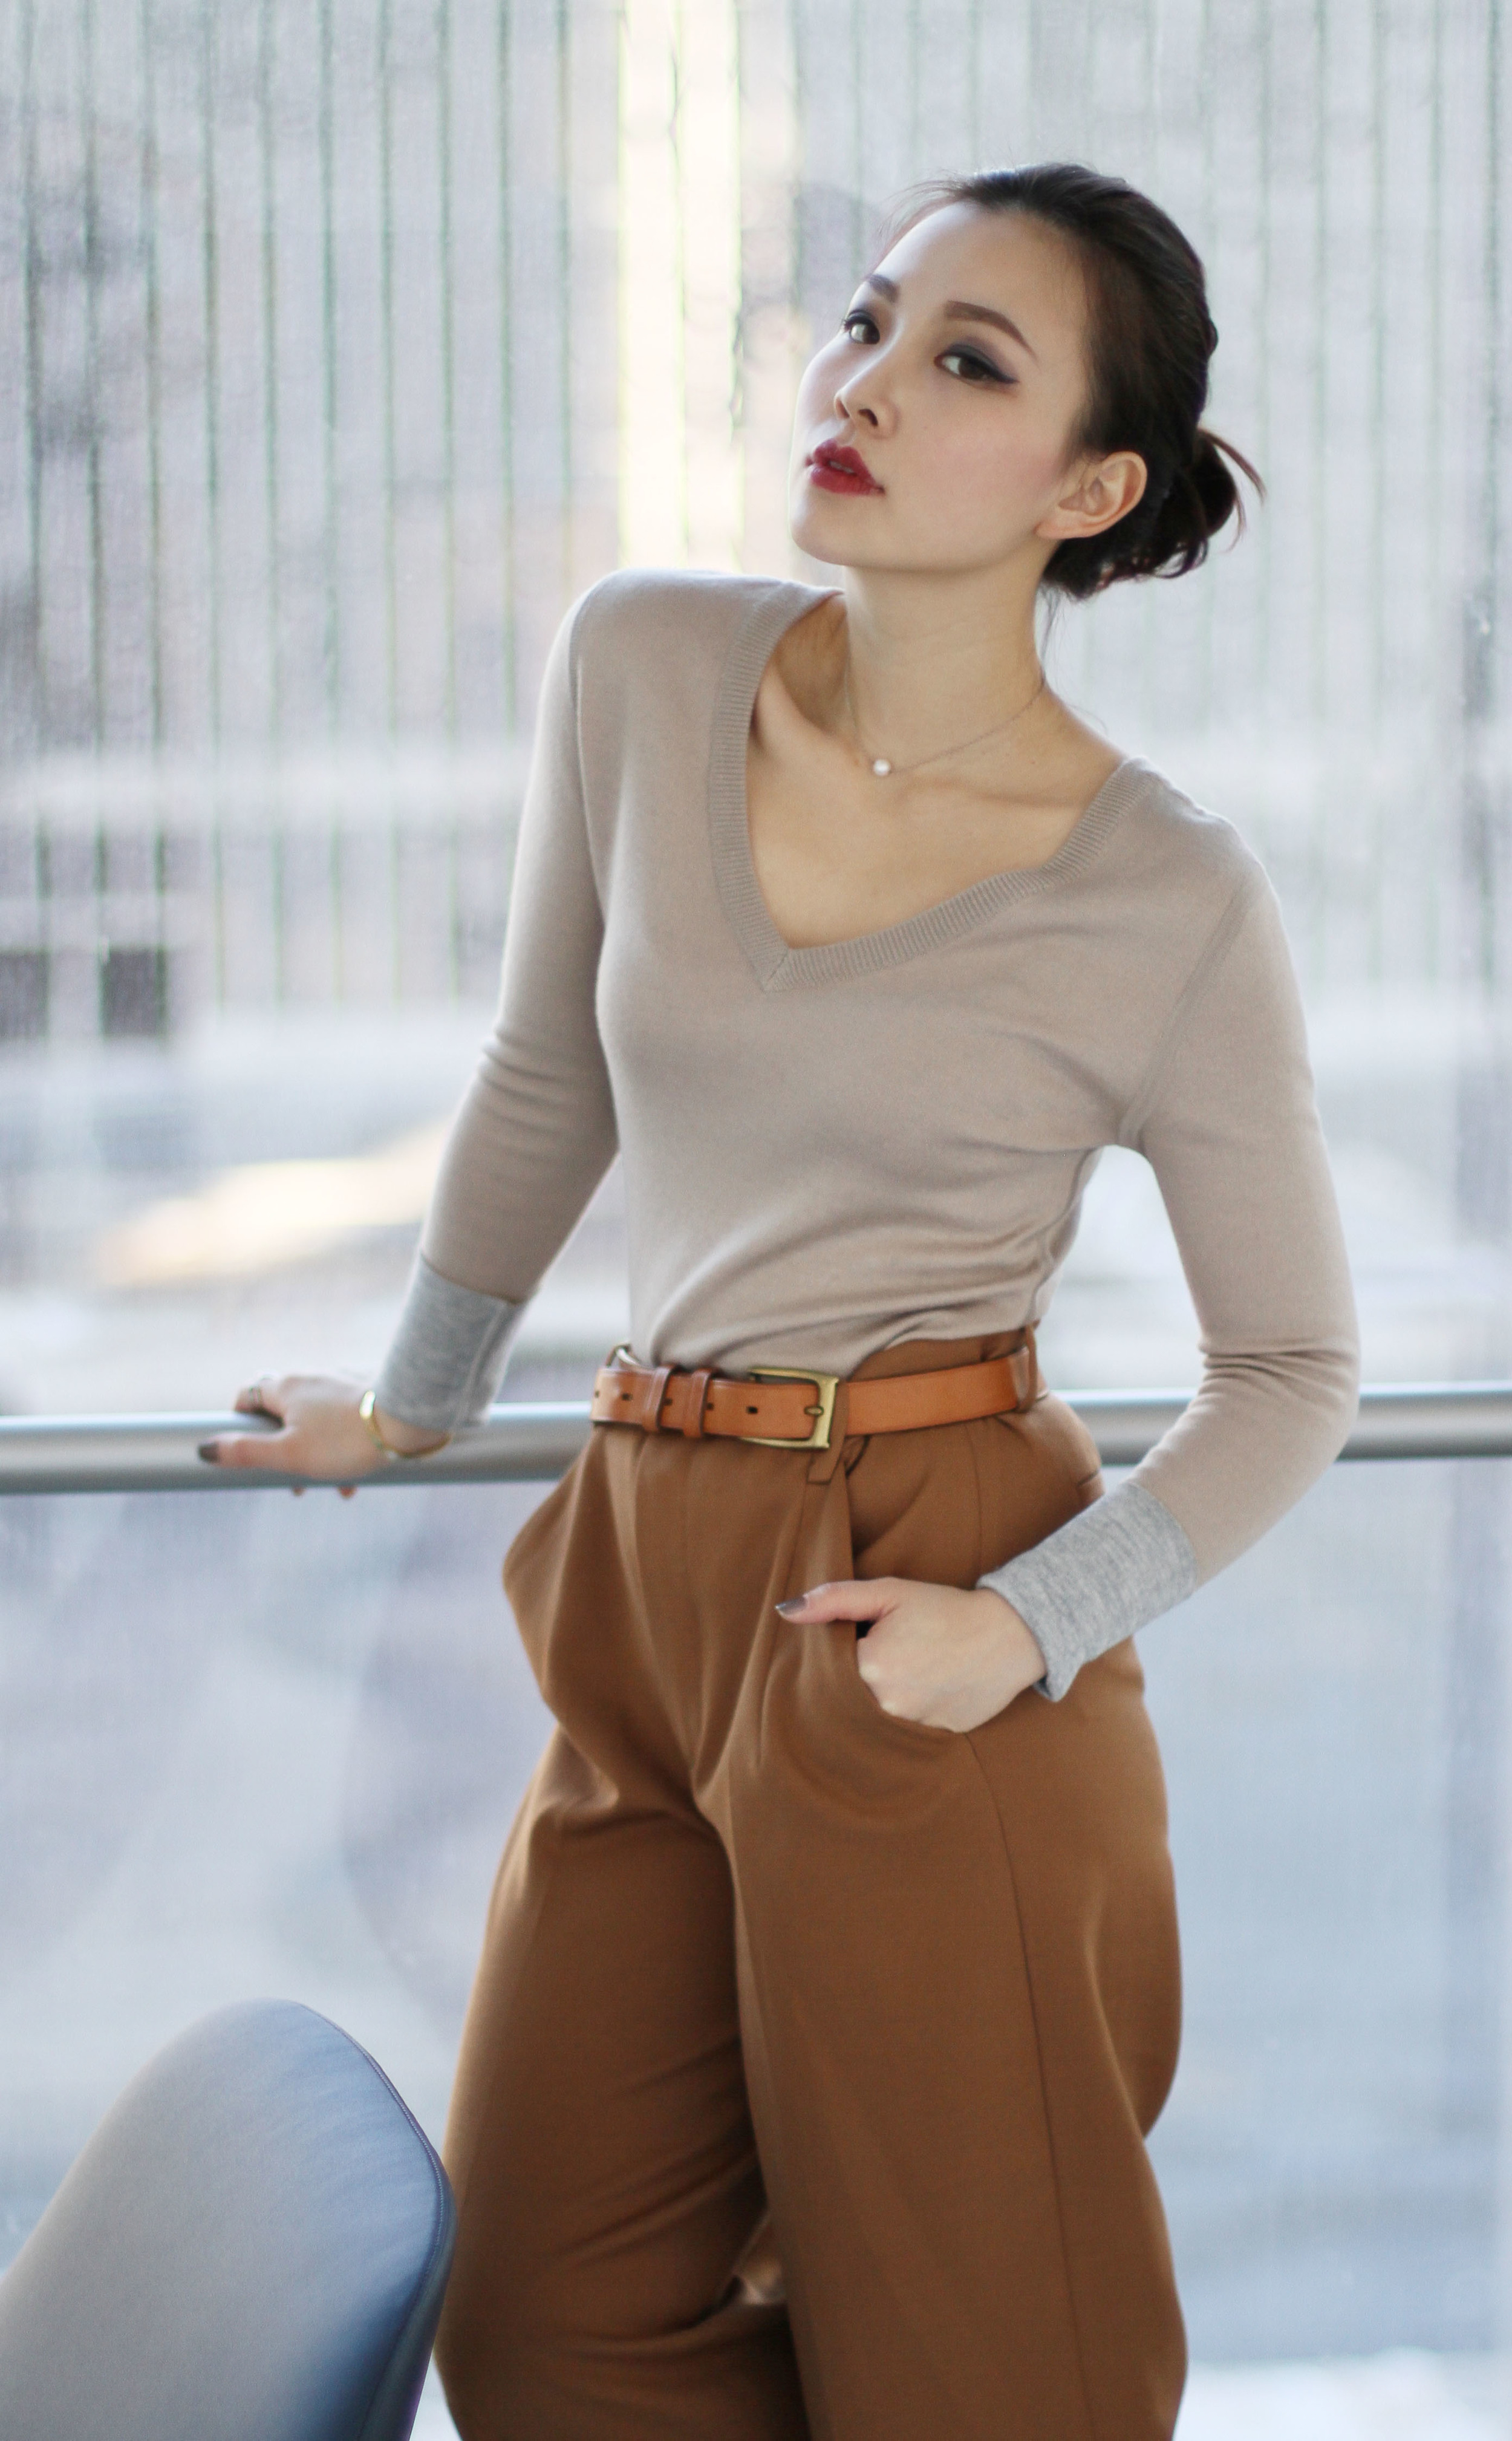 jia collection Reversible sweater6.jpg